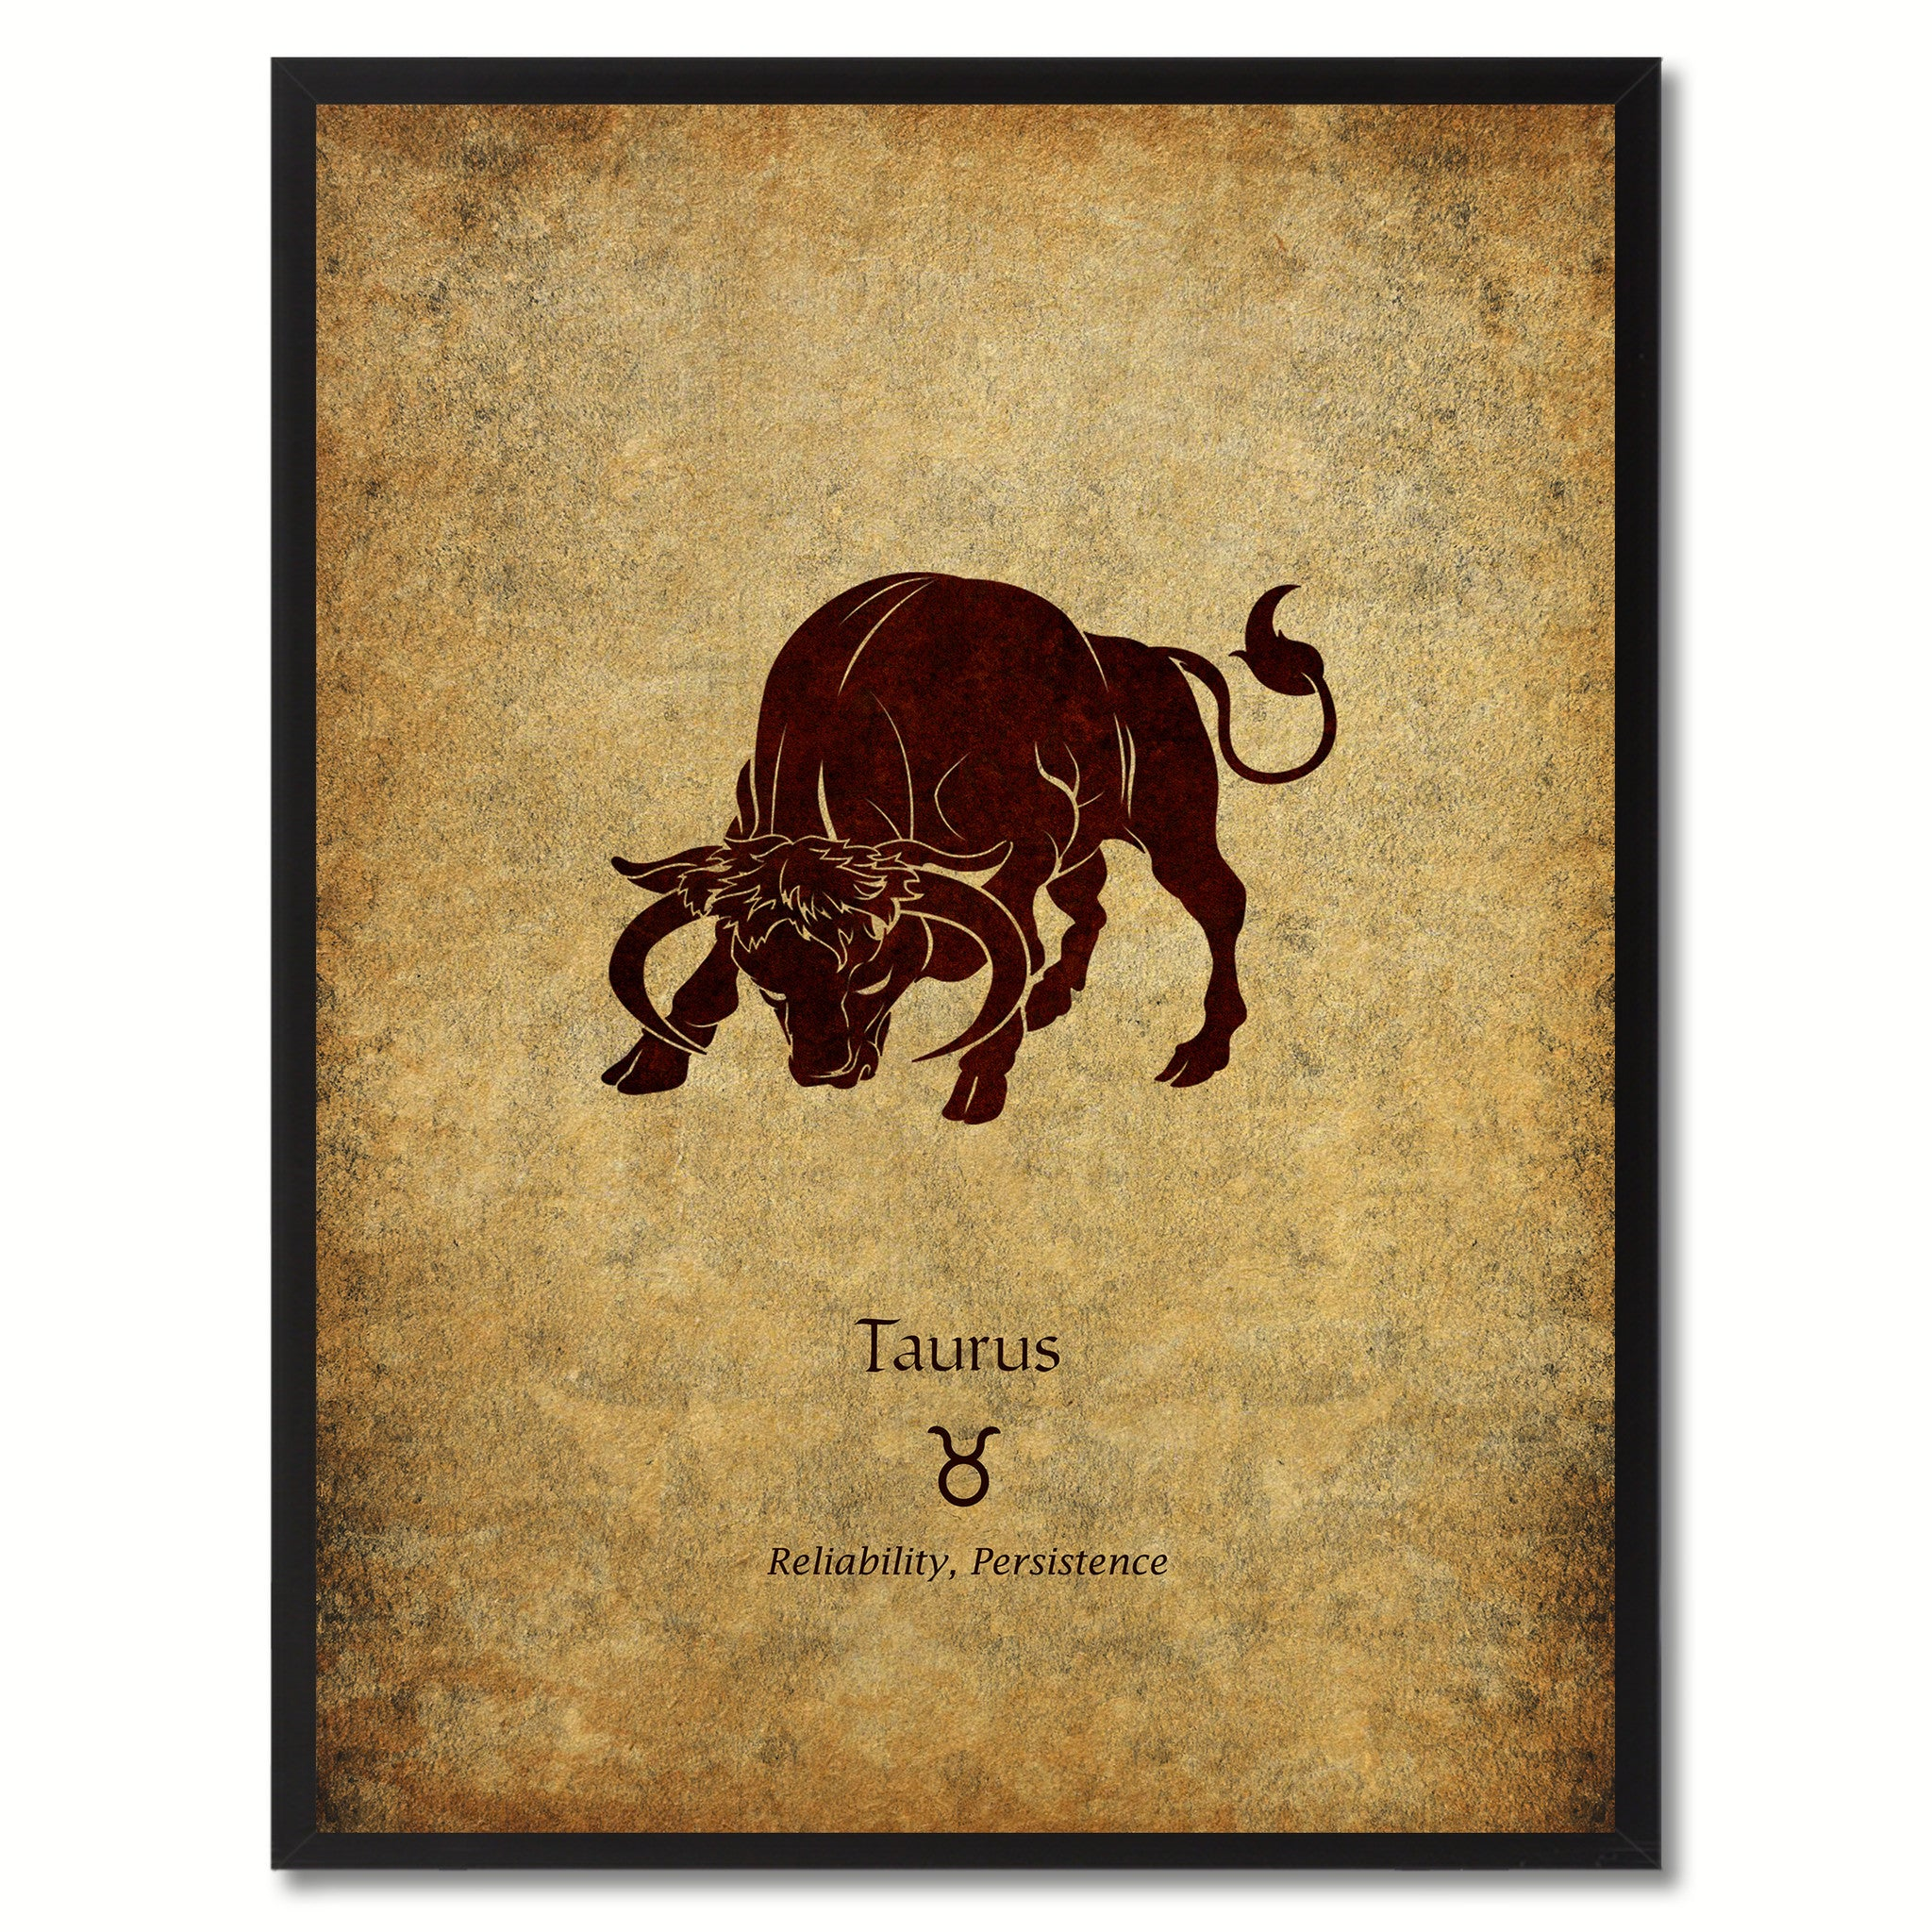 Zodiac Taurus Horoscope Astrology Canvas Print, Black Picture Frame Gifts  Home Decor Wall Art Decoration